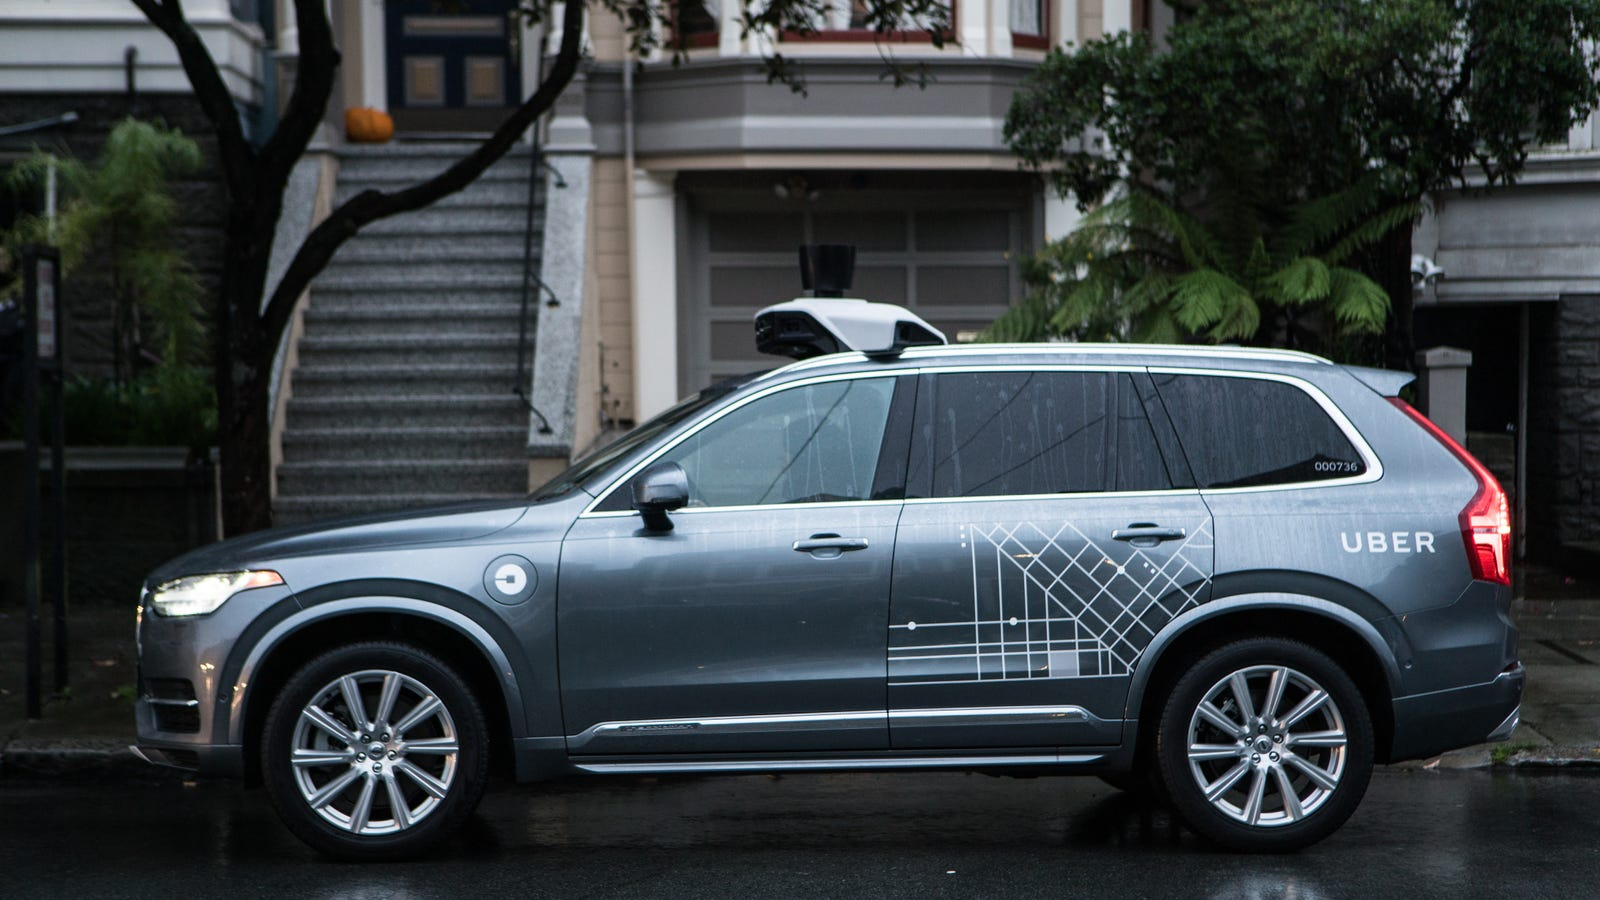 Why Uber Could Be Held Criminally Liable In Fatal Crash Involving Autonomous Car